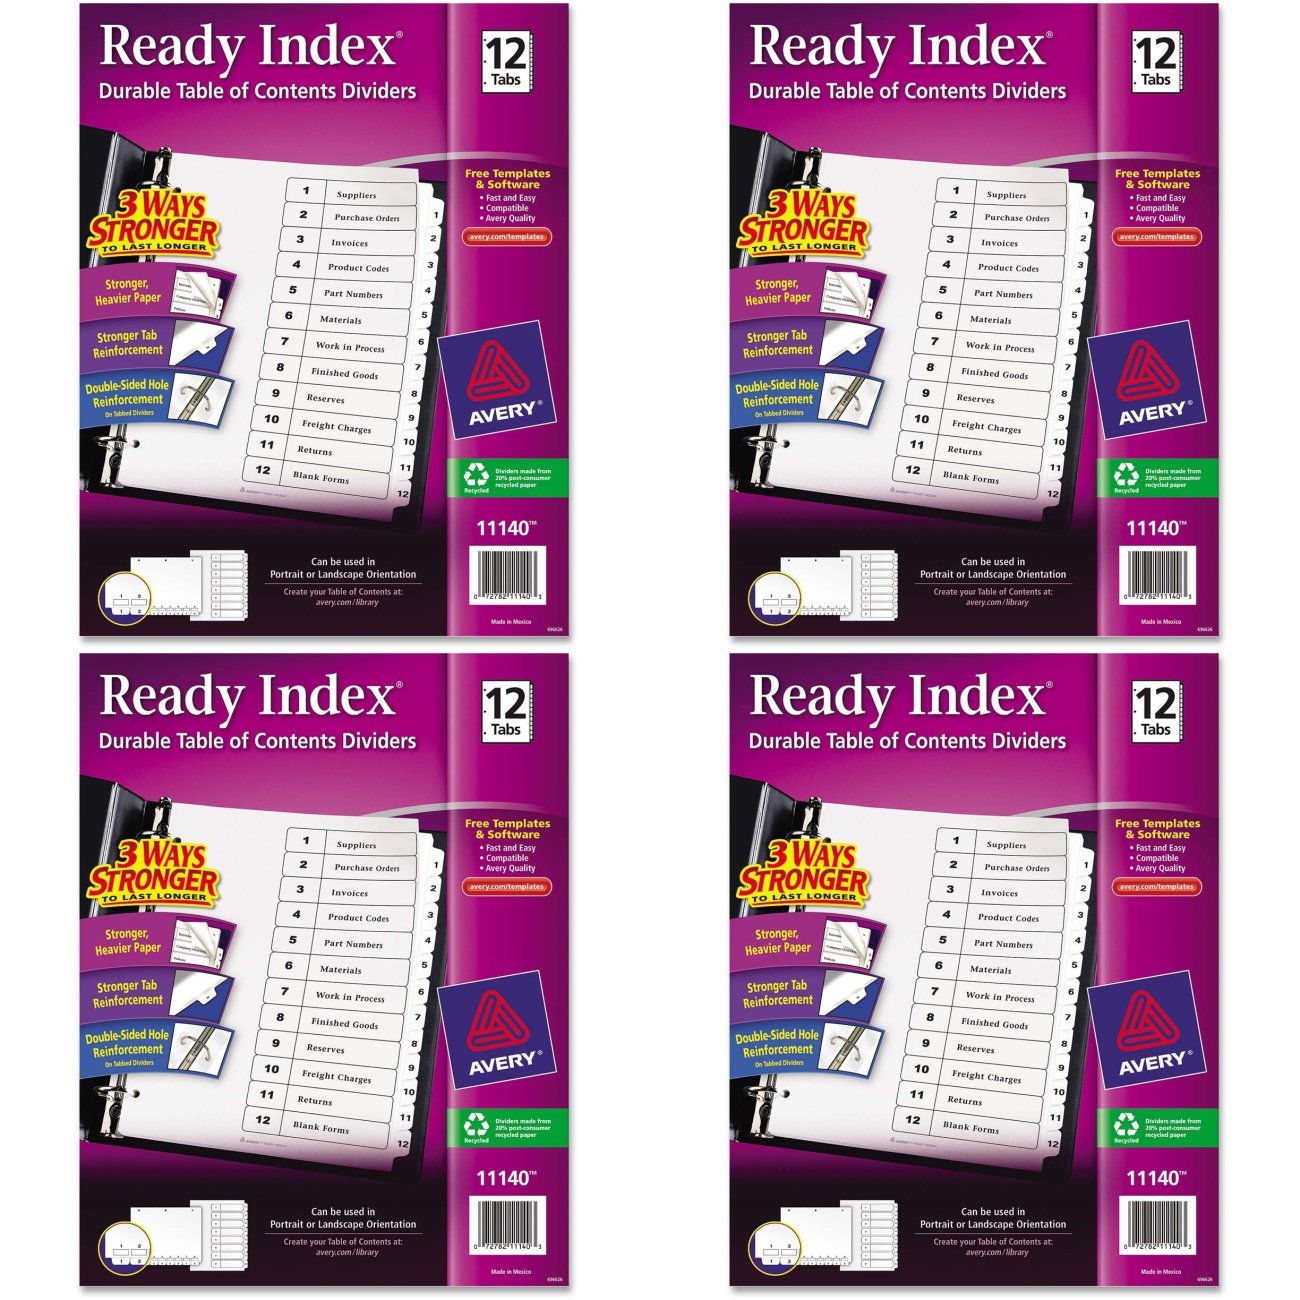 Avery Ready Index Table of Contents Dividers, Black/White, 12-Tab Set (11140), 4 Packs